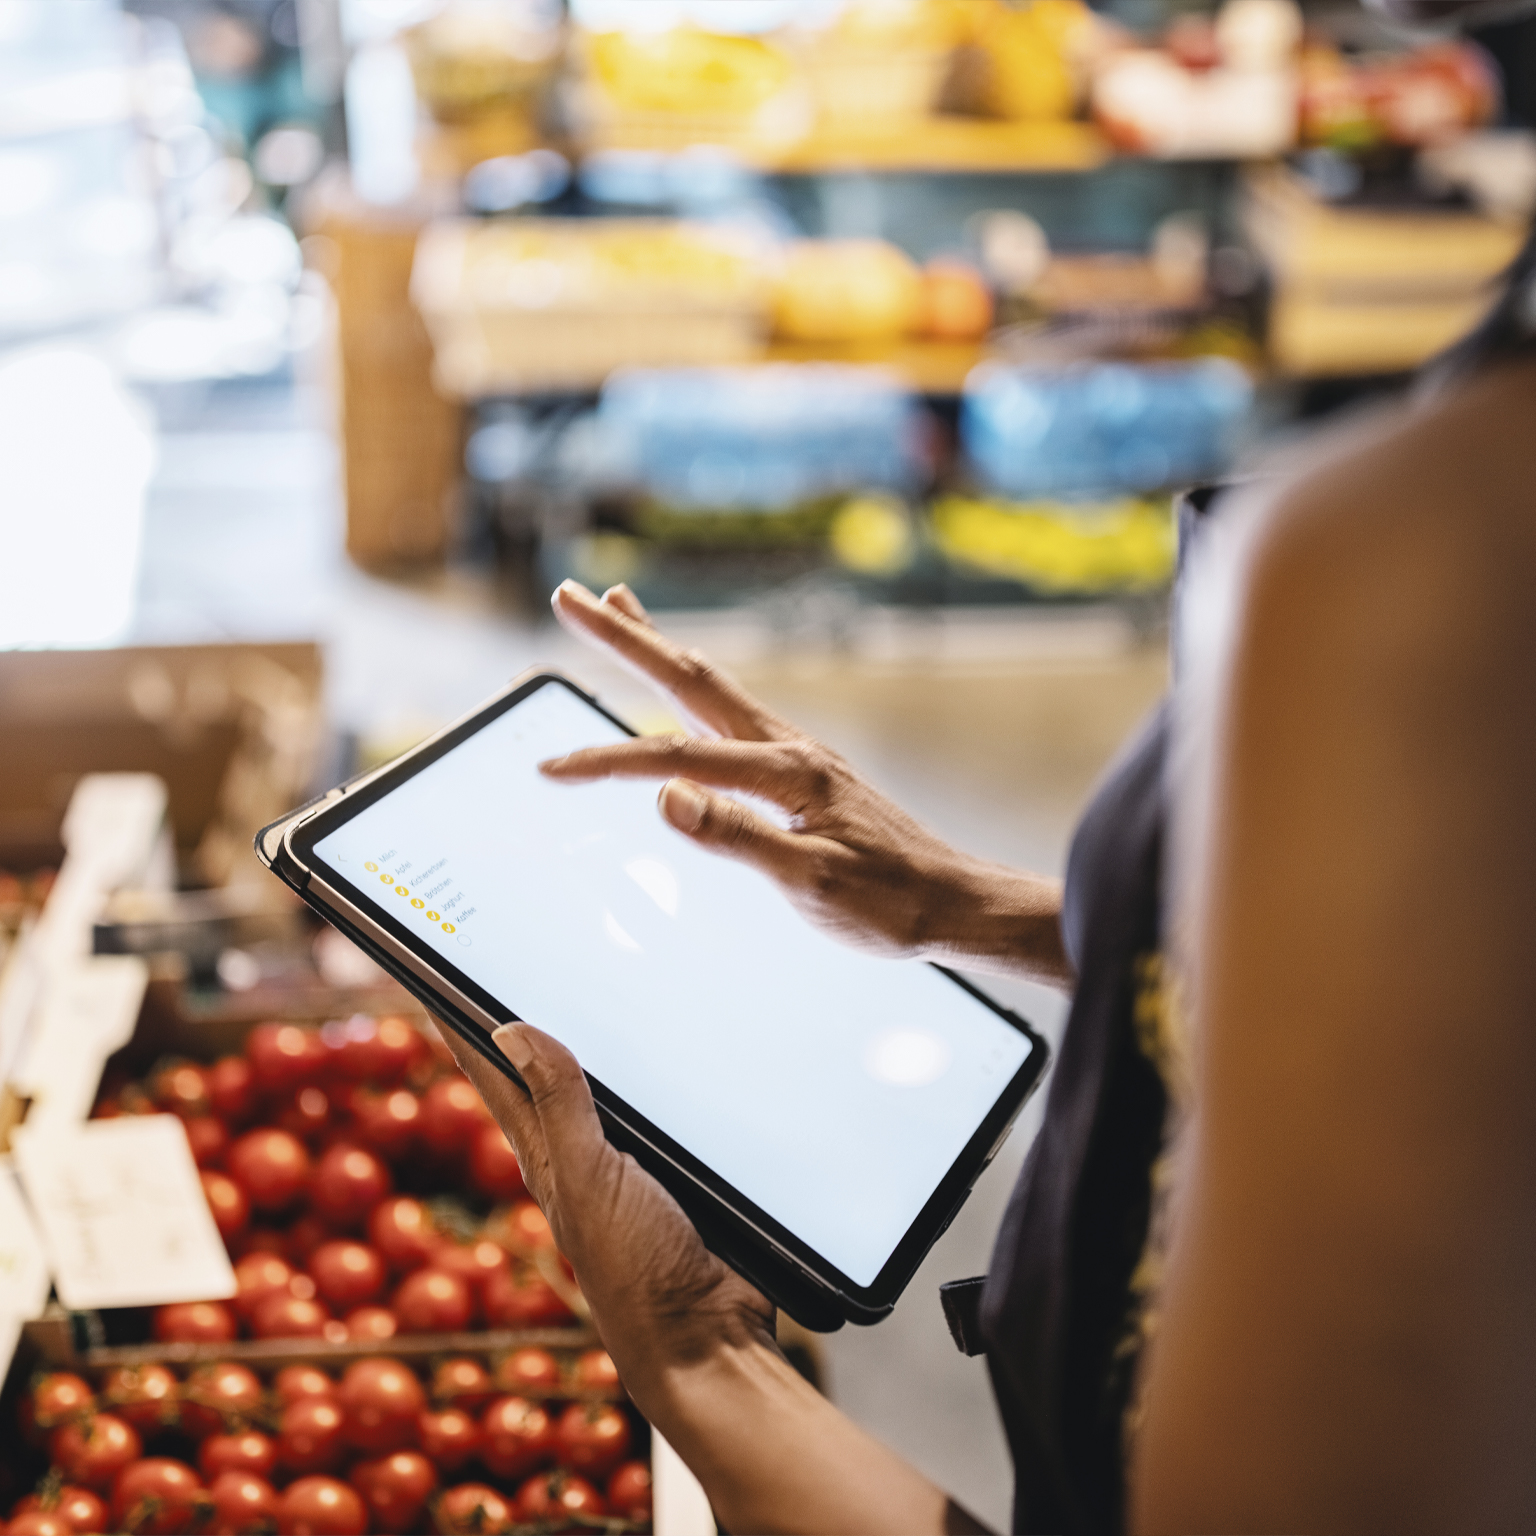 prioritizing-flexibility:-how-grocers-can-get-the-most-out-of-technology